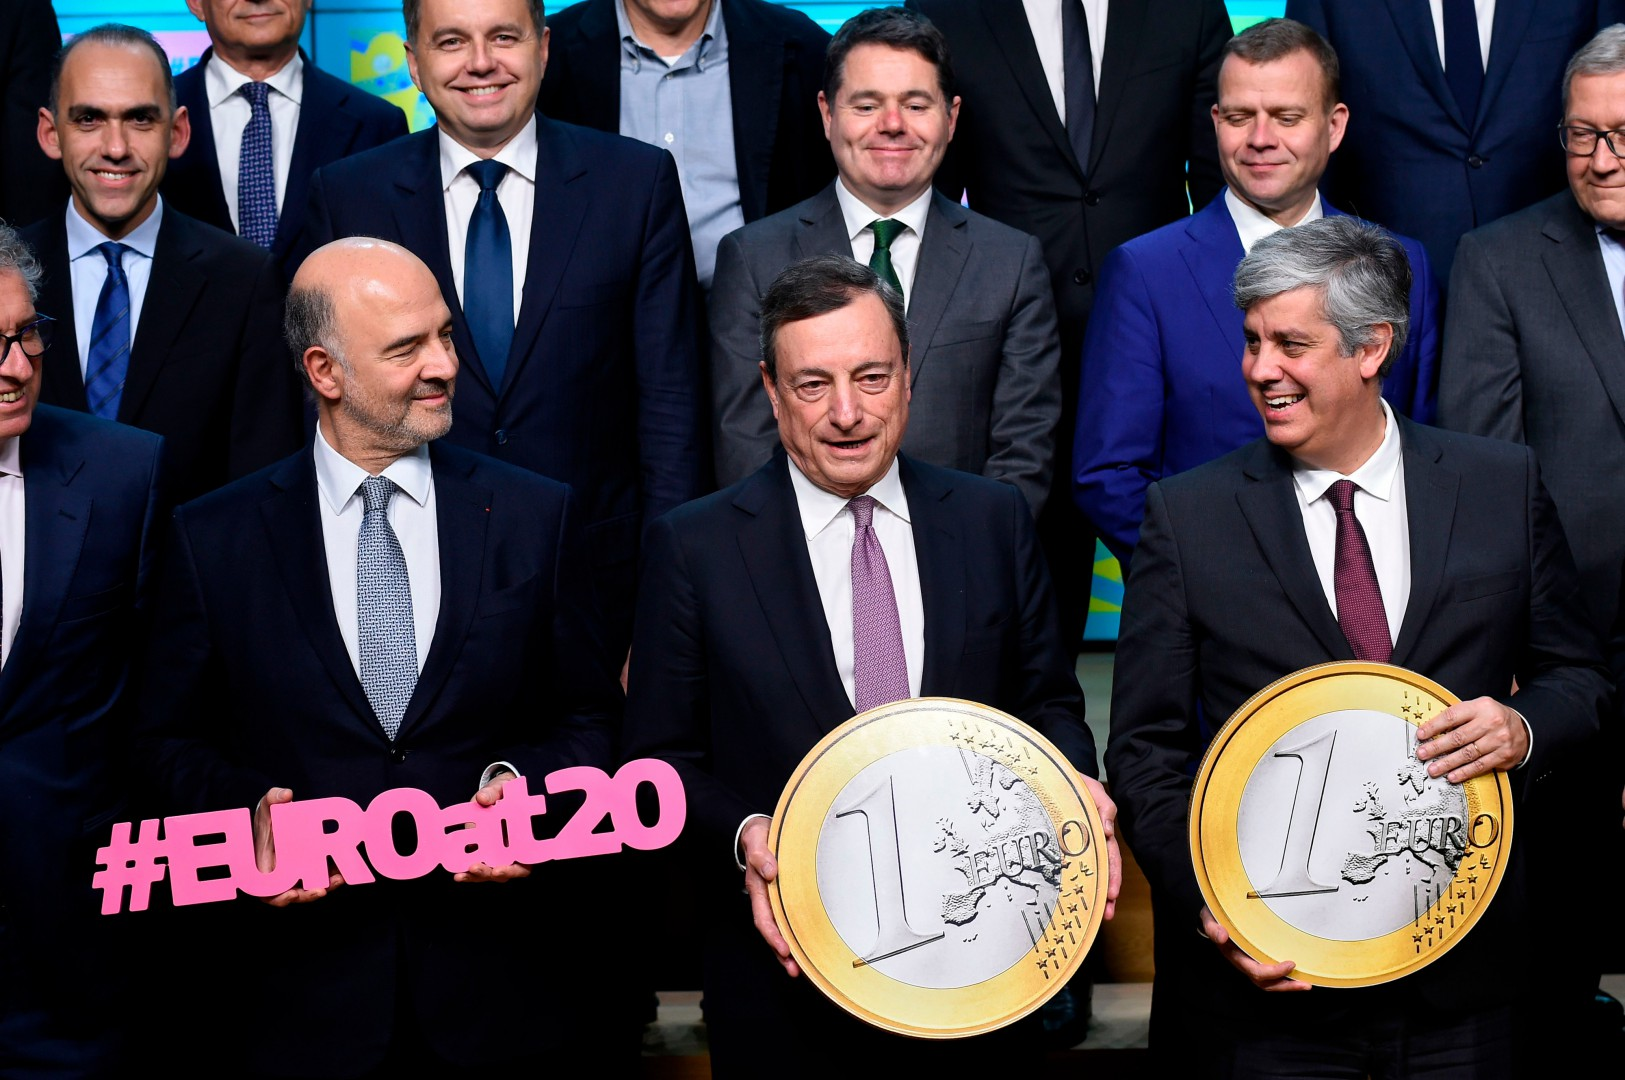 European Commissioner for Economic and Financial Affairs, Taxation and Customs Pierre Moscovici (L) President of the ECB, Mario Draghi, and Portuguese Finance Minister and president of Eurogroup Mario Centeno pose with a replica of an EU coin marking the twentieth anniversary of the Euro during an Eurogroup meeting at the EU headquarters in Brussels on December 3, 2018. (Photo by JOHN THYS / AFP)